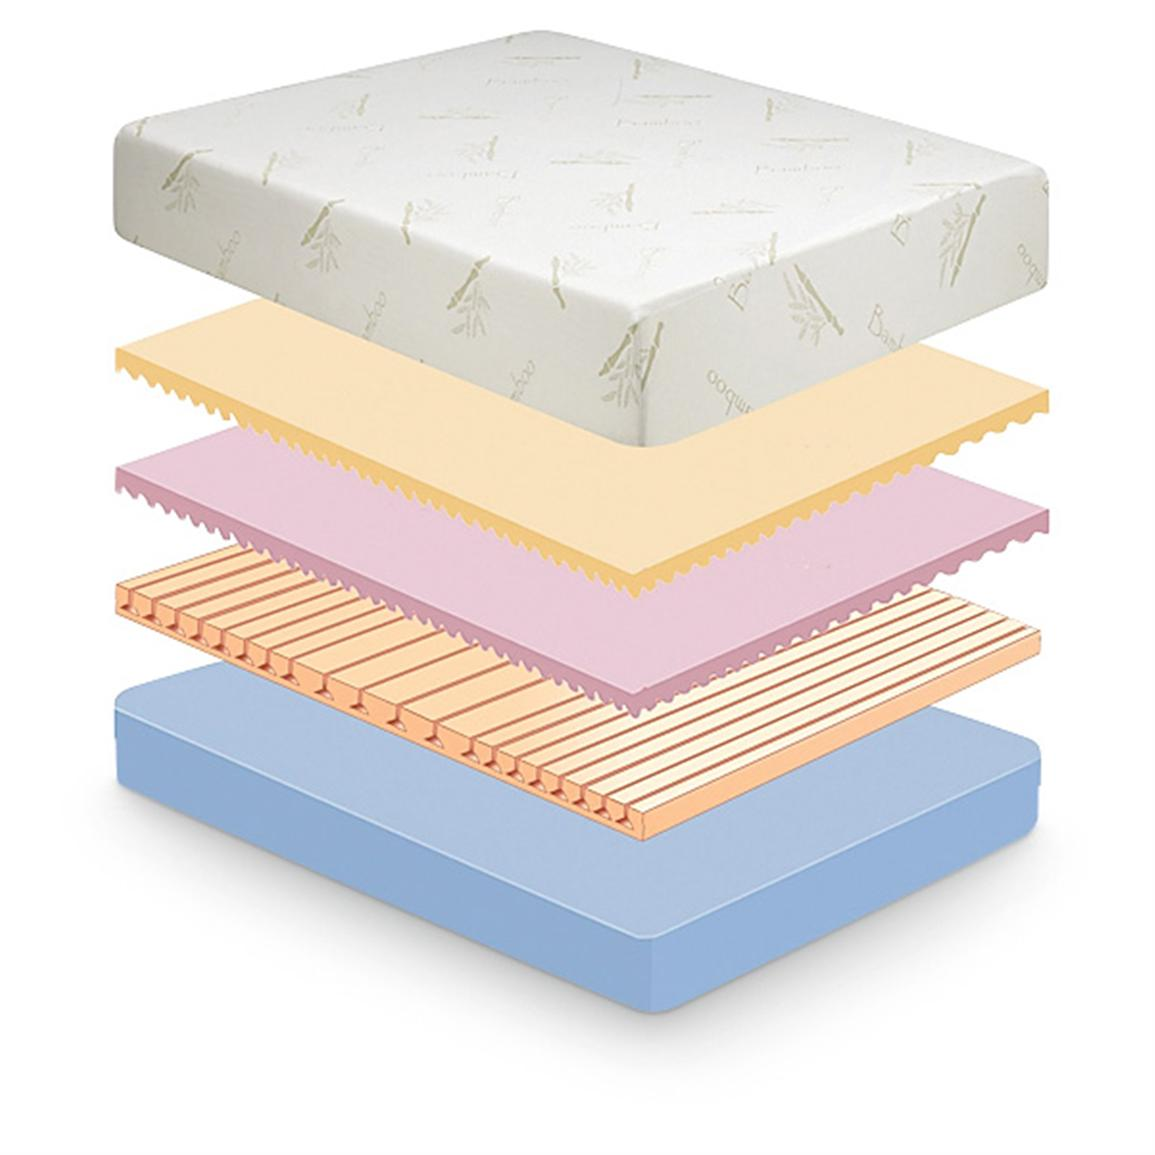 Revolutionary 4-layer construction